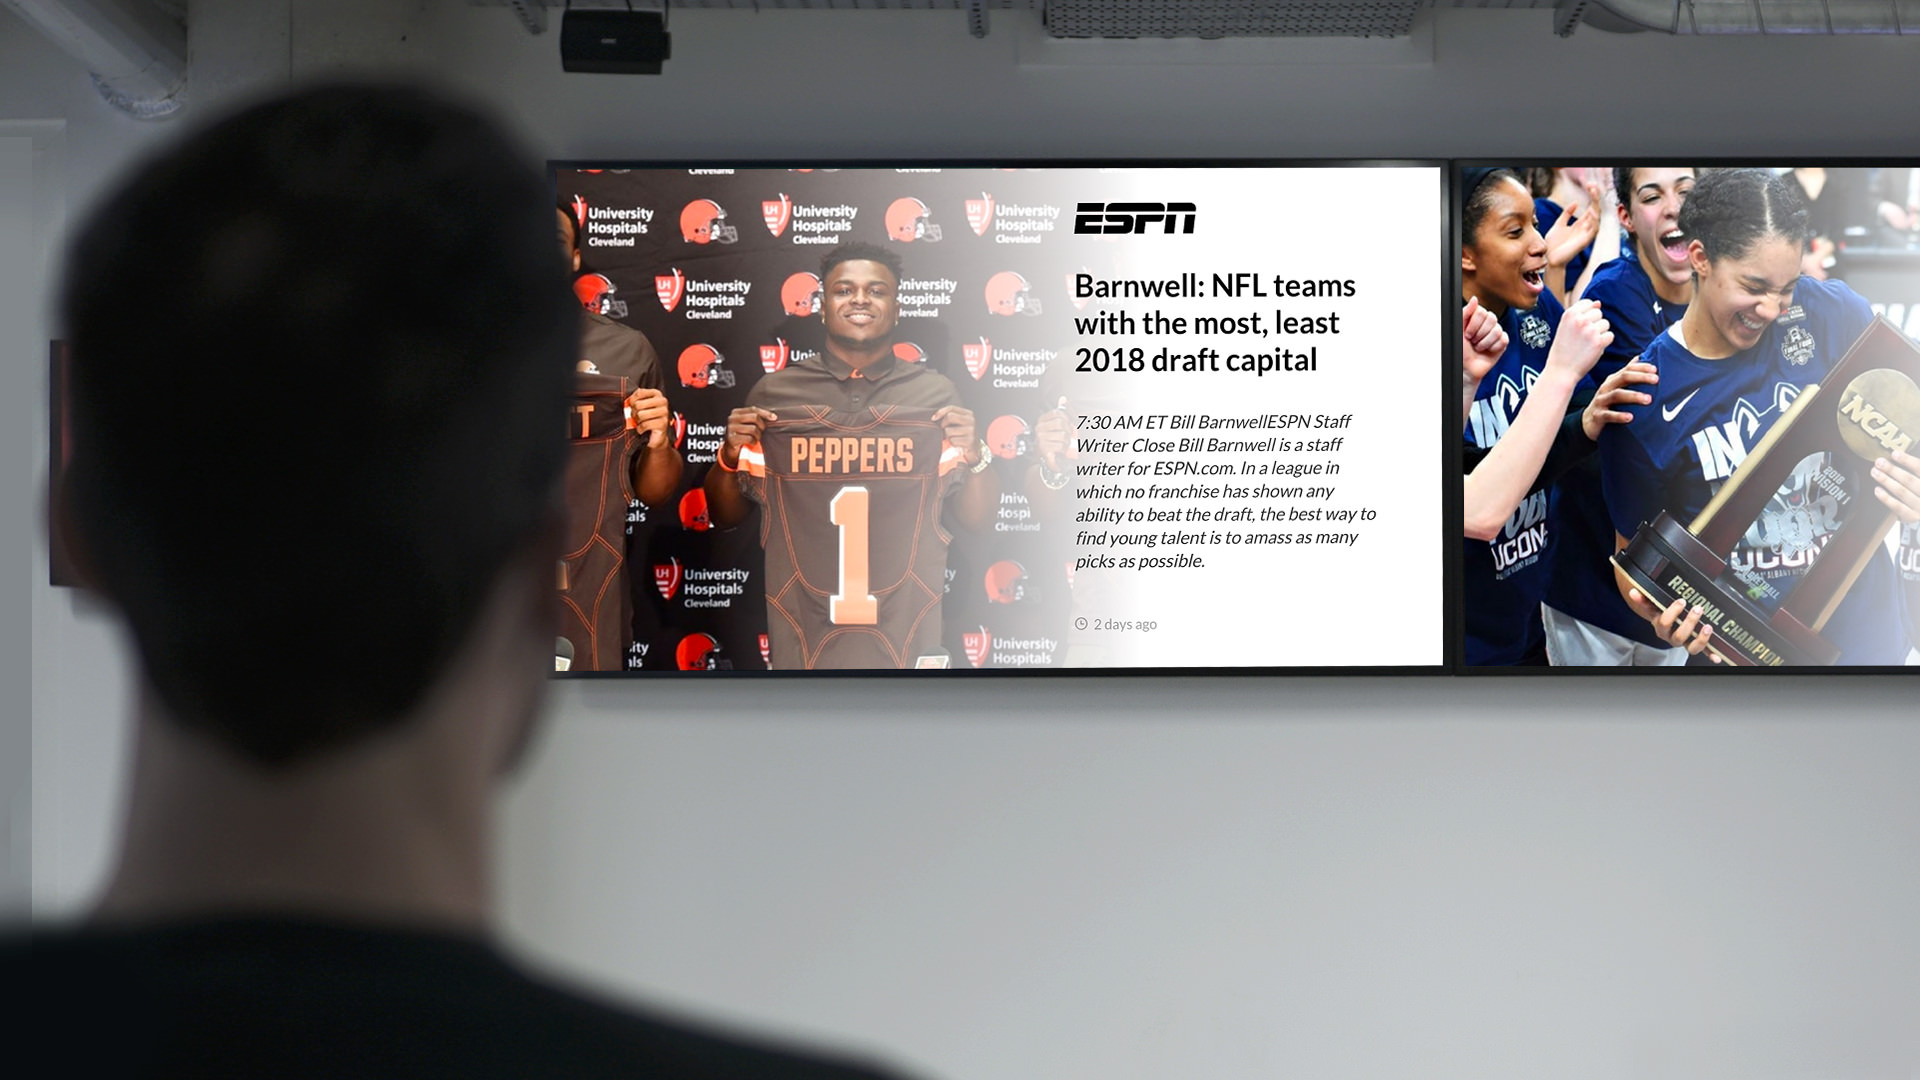 ESPN screenshot 1